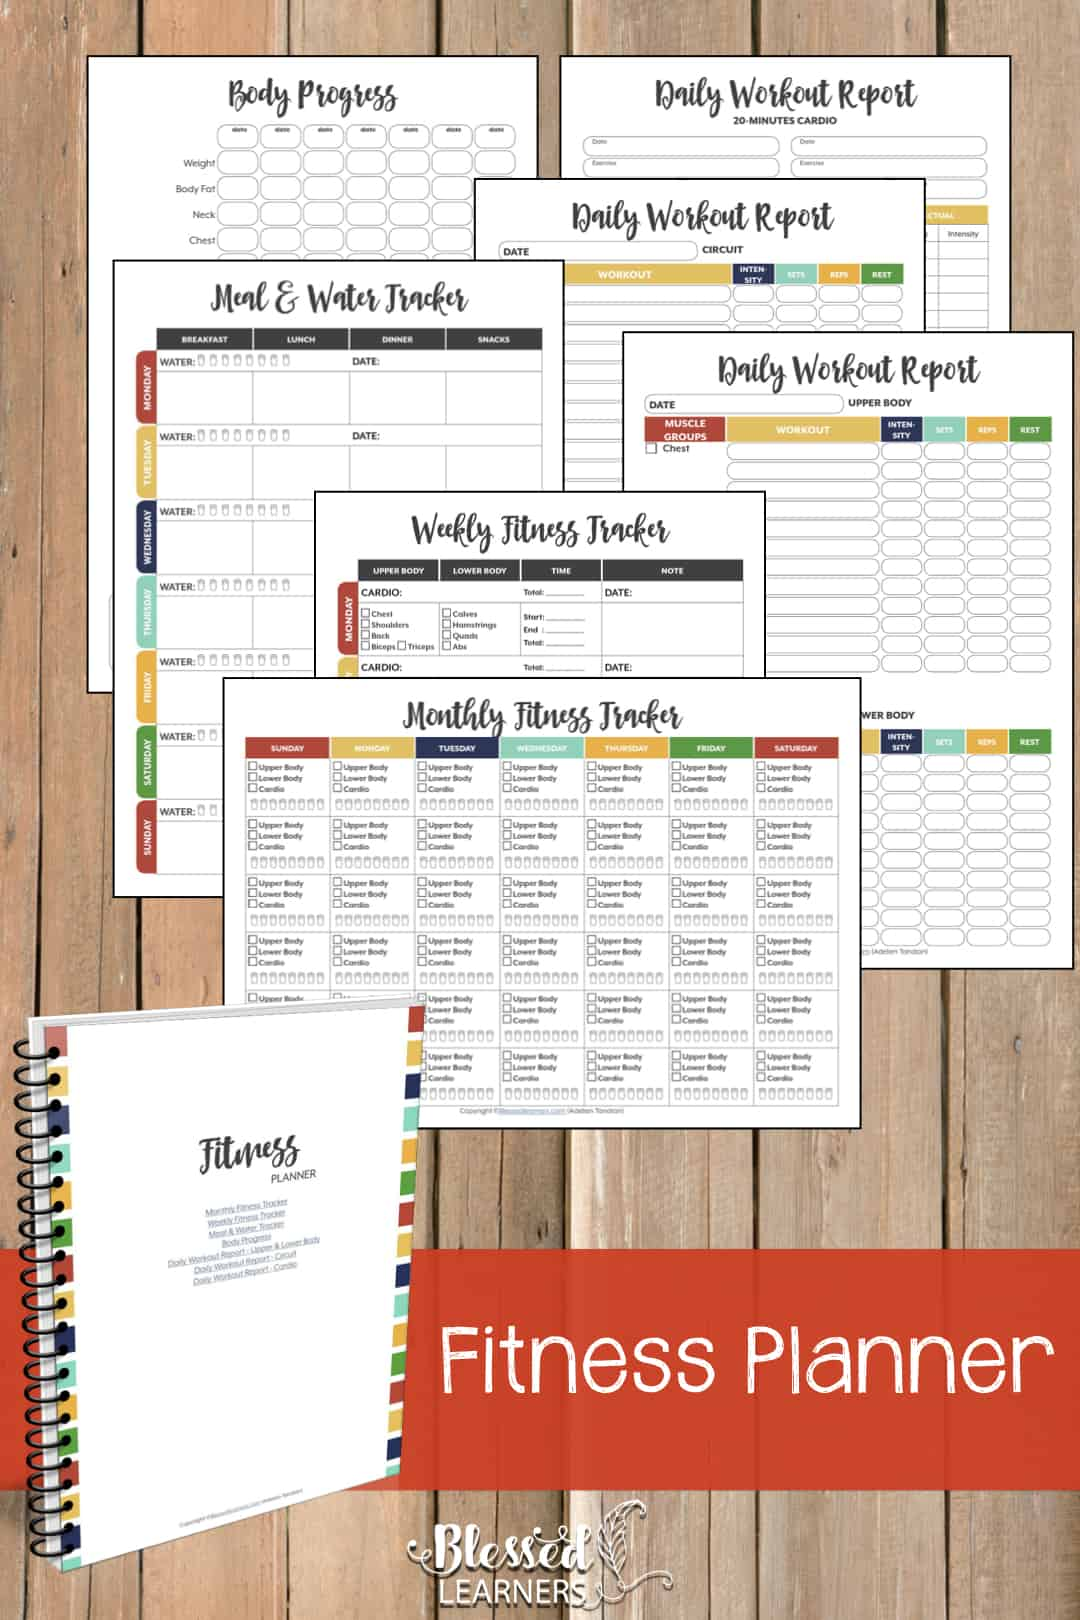 The Ultimate Life Planner Organizer for Moms is the perfect solution to getting most aspects of your home-and-work life well organized. A total of 230+ printable pages you can customize to use are included in the digital file. | FitnessPlanner | #Planner #Printable #TimeManagement #Organizer